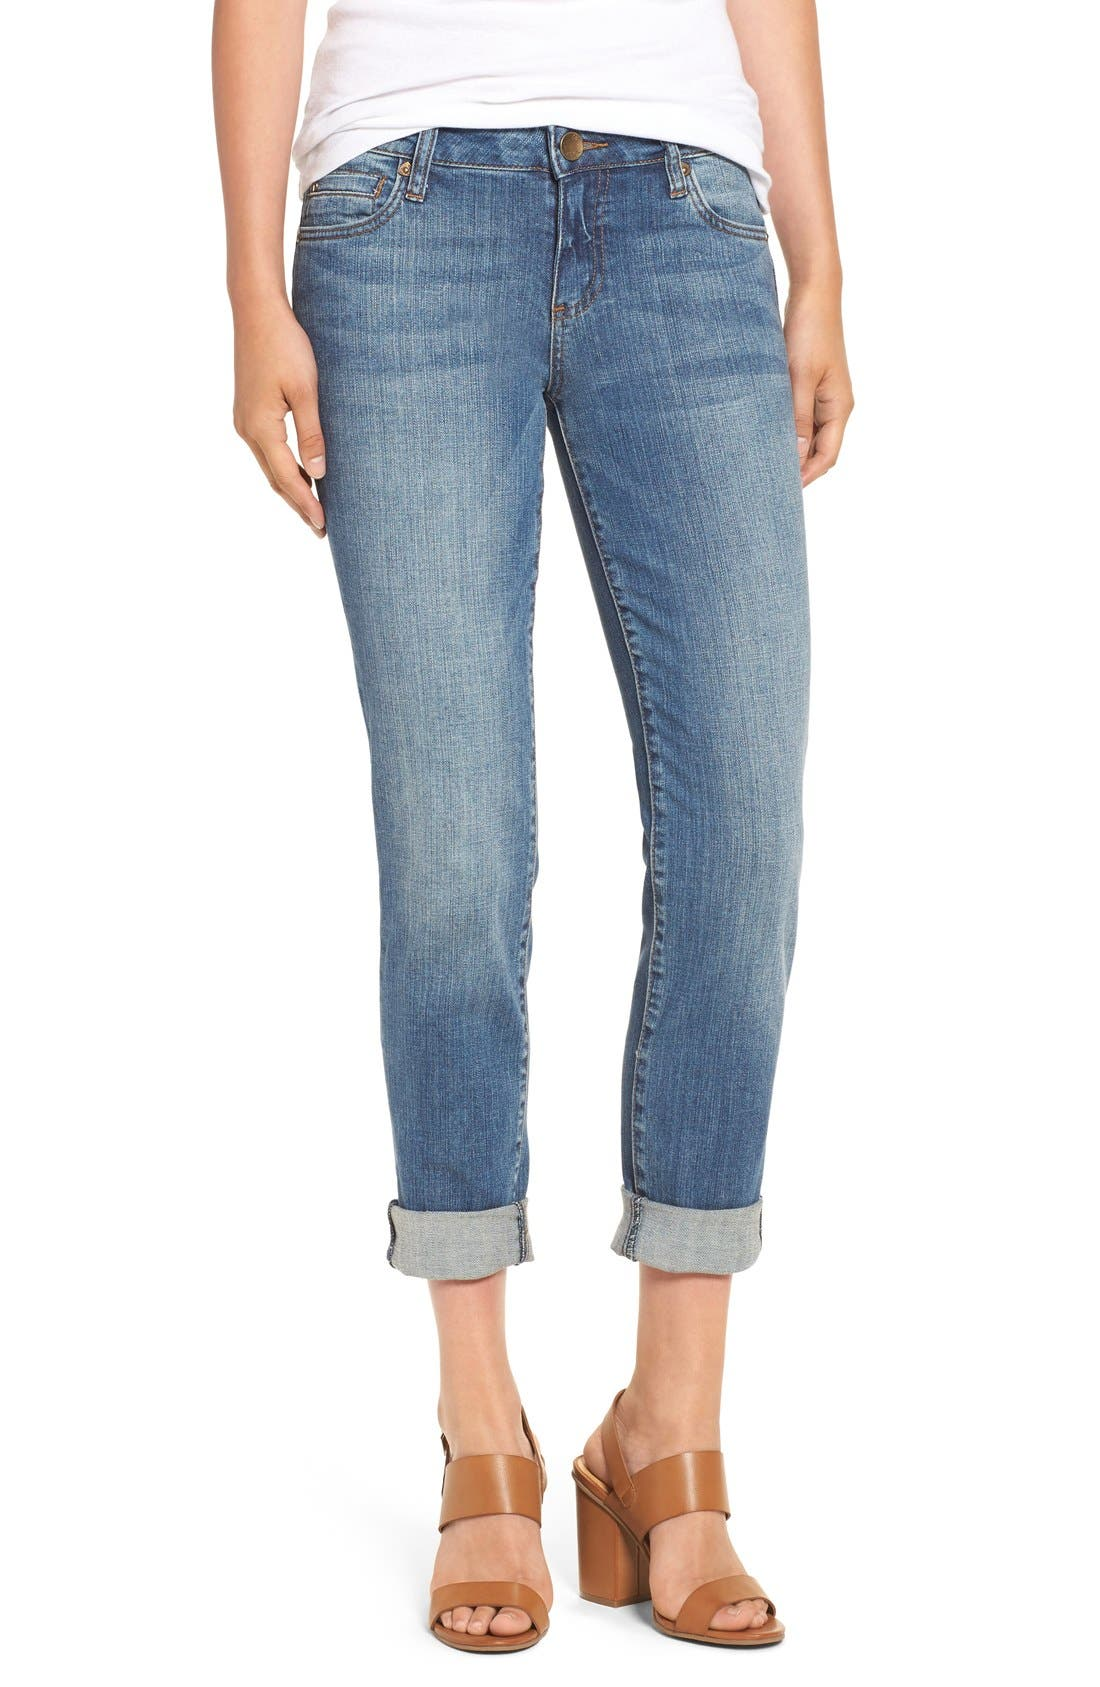 Alternate Image 1 Selected - KUT from the Kloth 'Catherine' Slim Boyfriend Jeans (Fervent) (Regular & Petite)